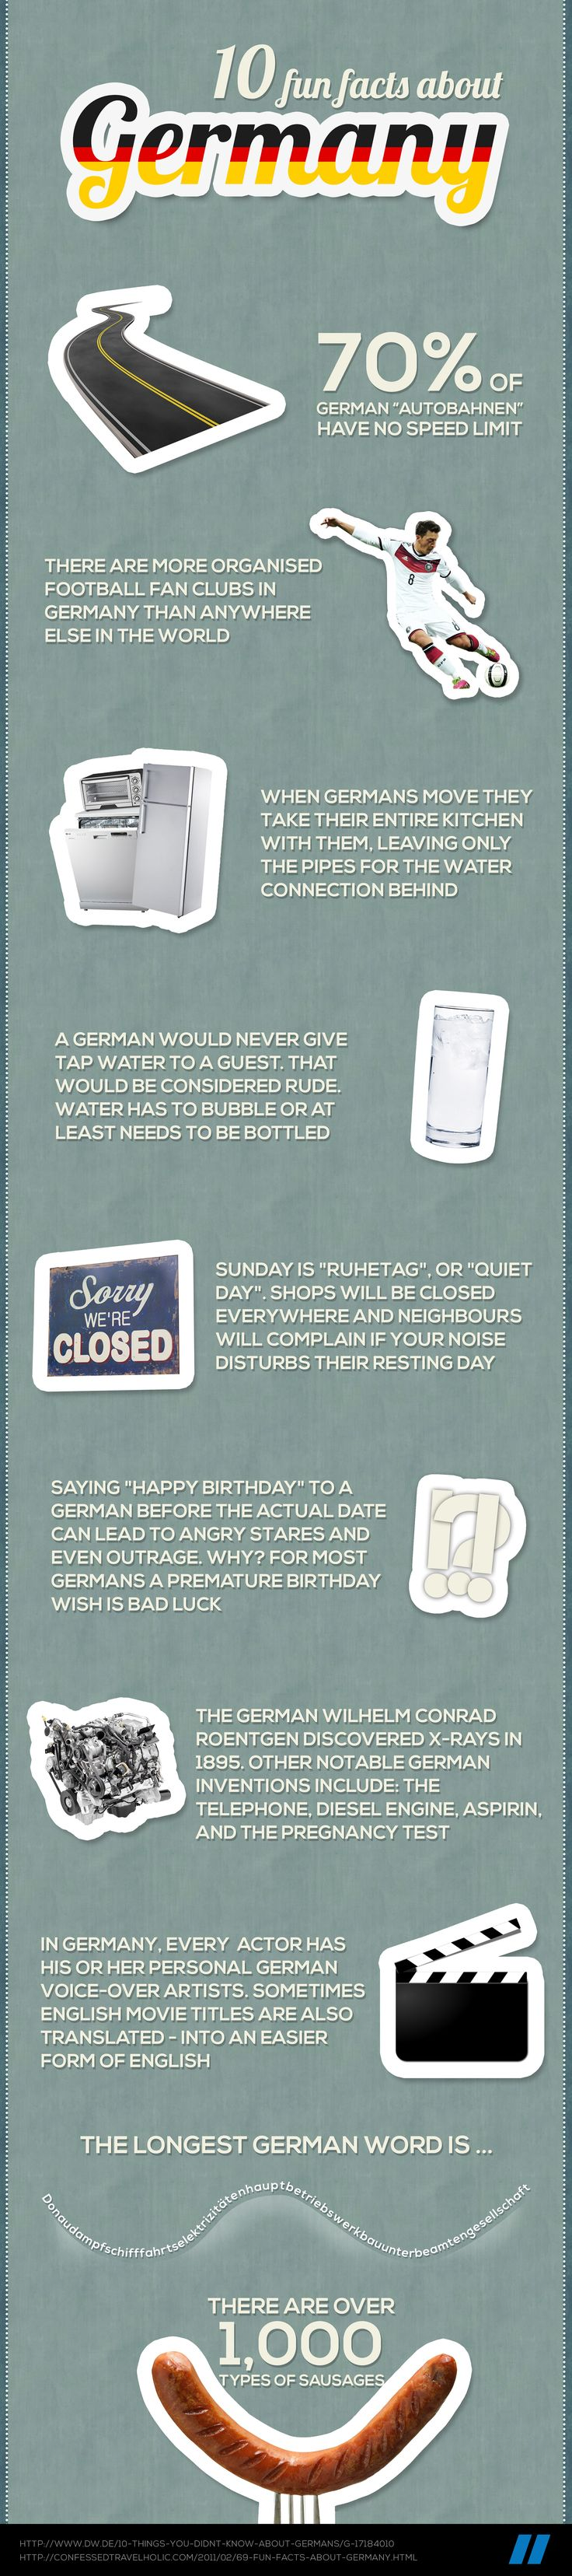 10 fun facts about Germany  #infographic #Germany #facts